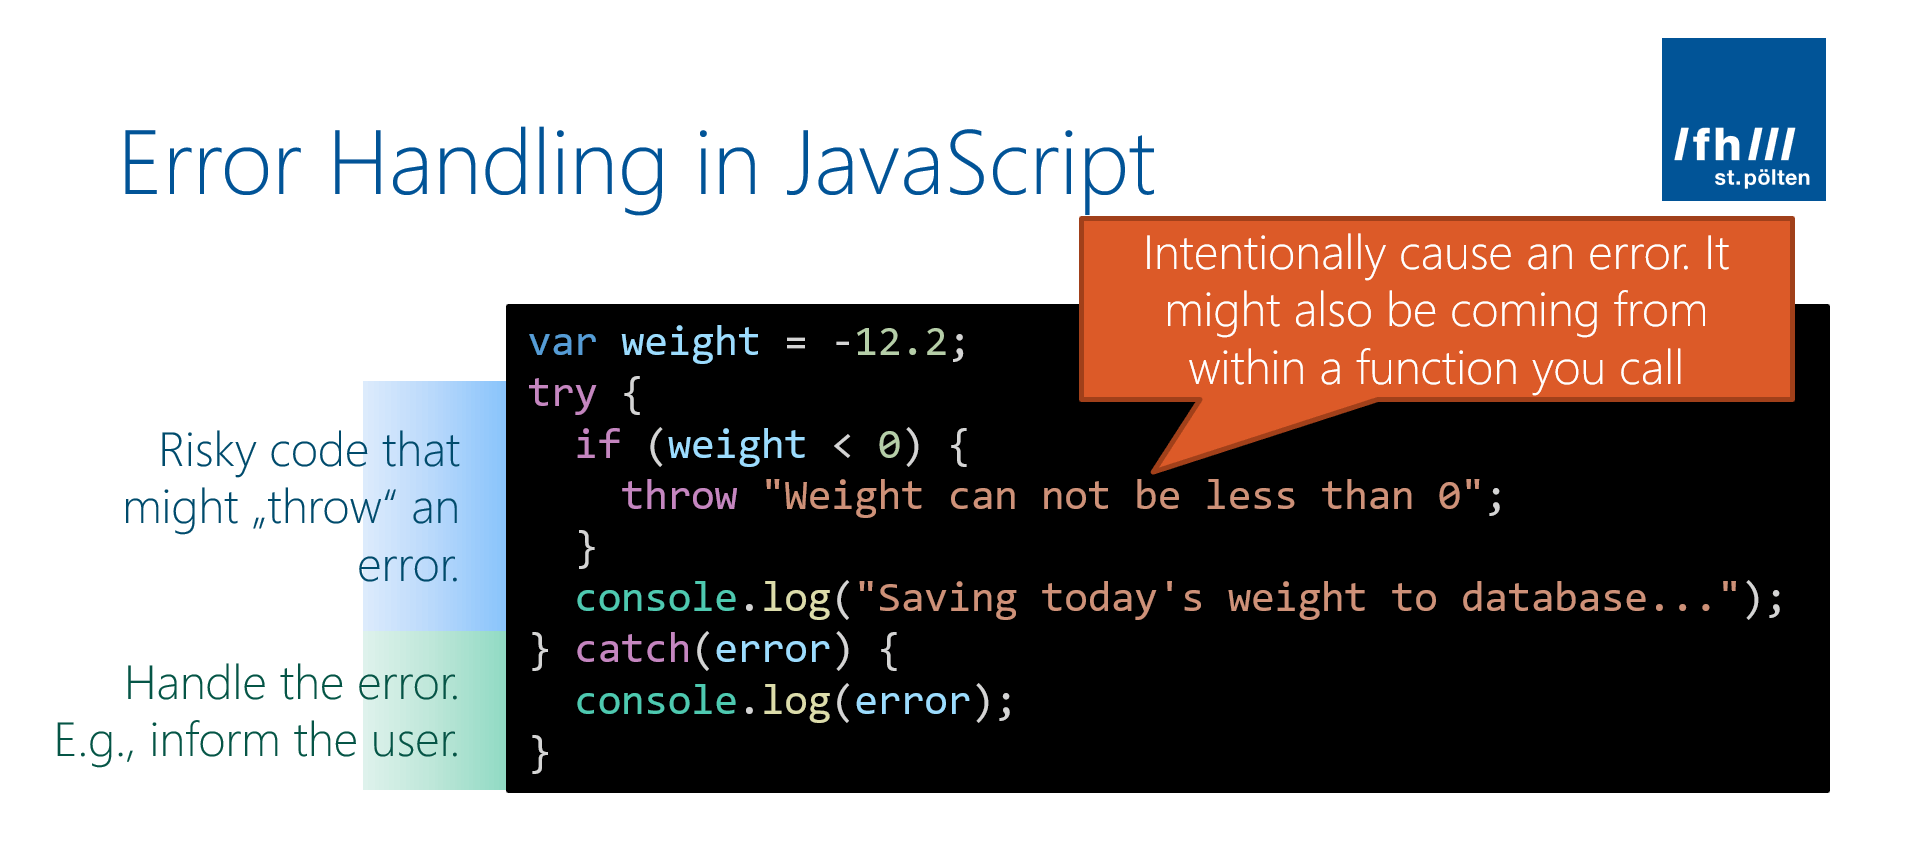 Error handling in JavaScript with try / catch